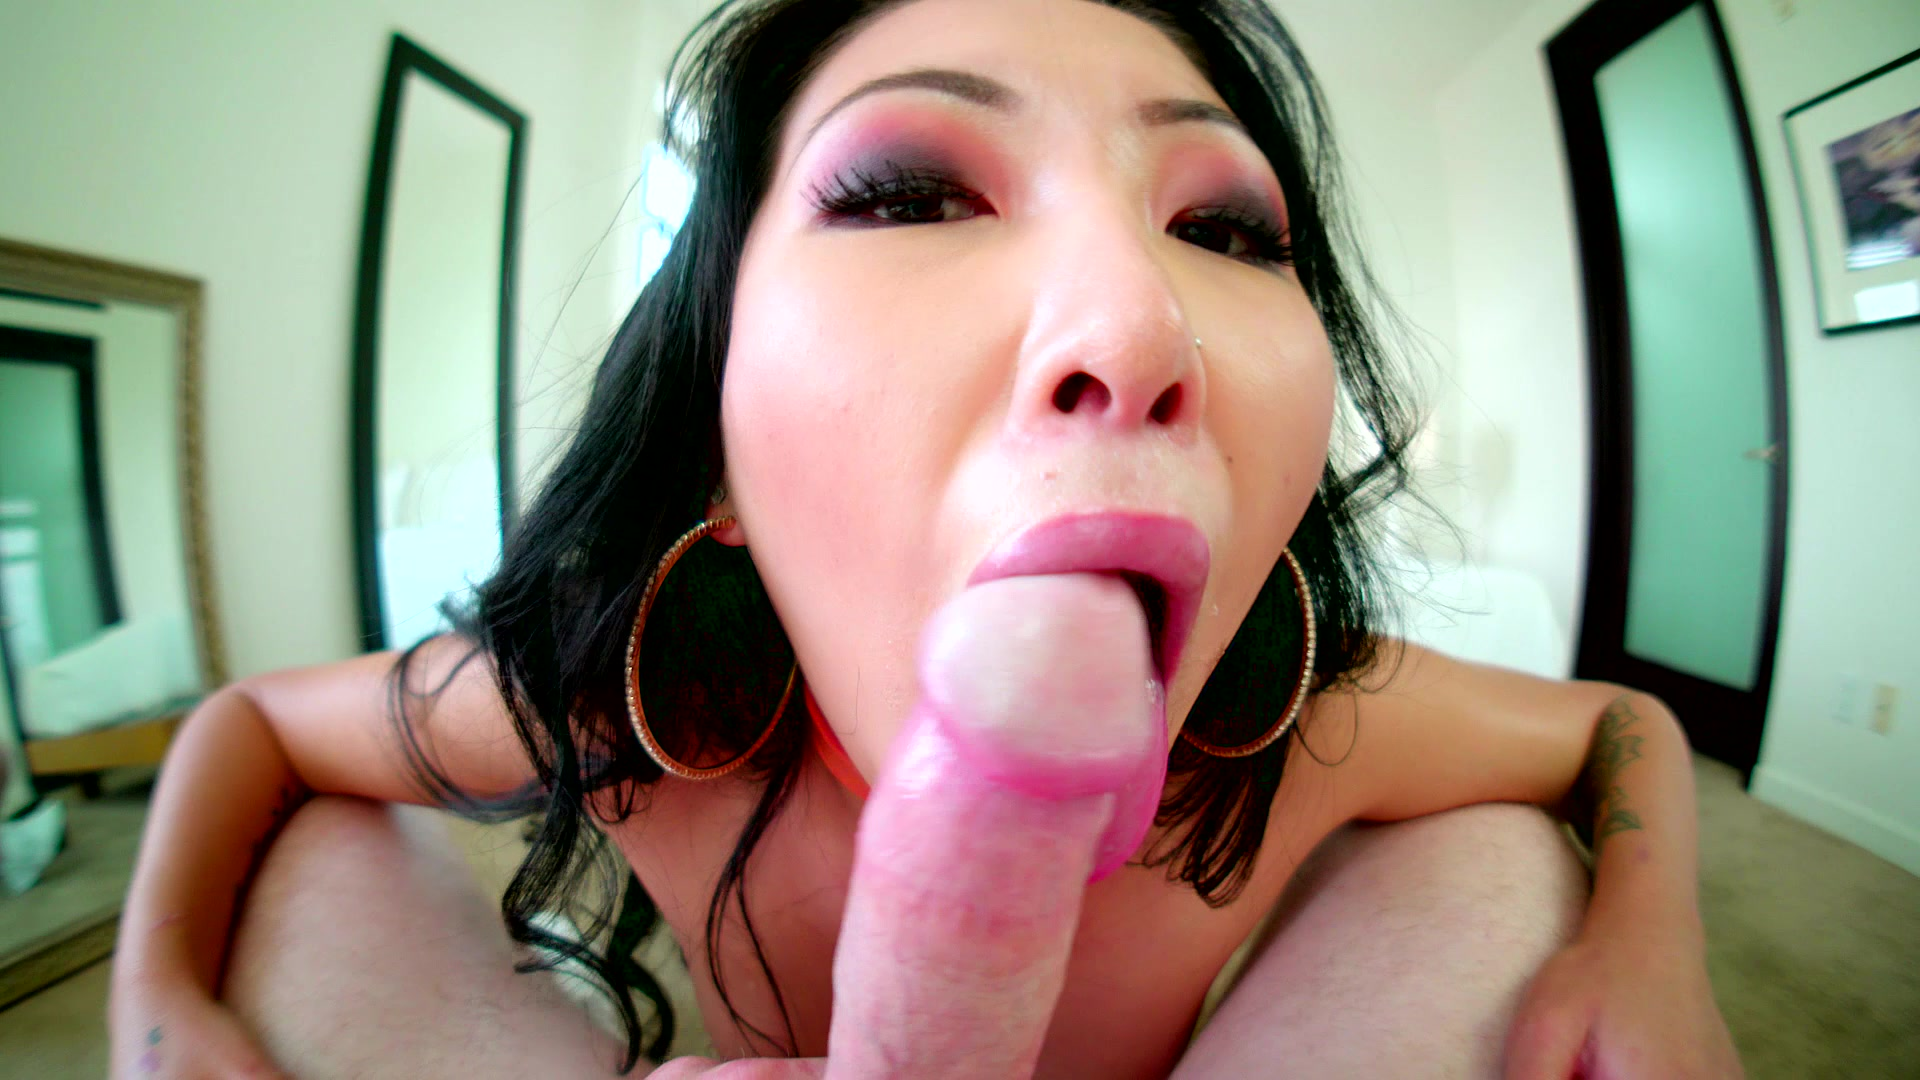 Free Video Preview image 3 from Asian Fuck Faces 4